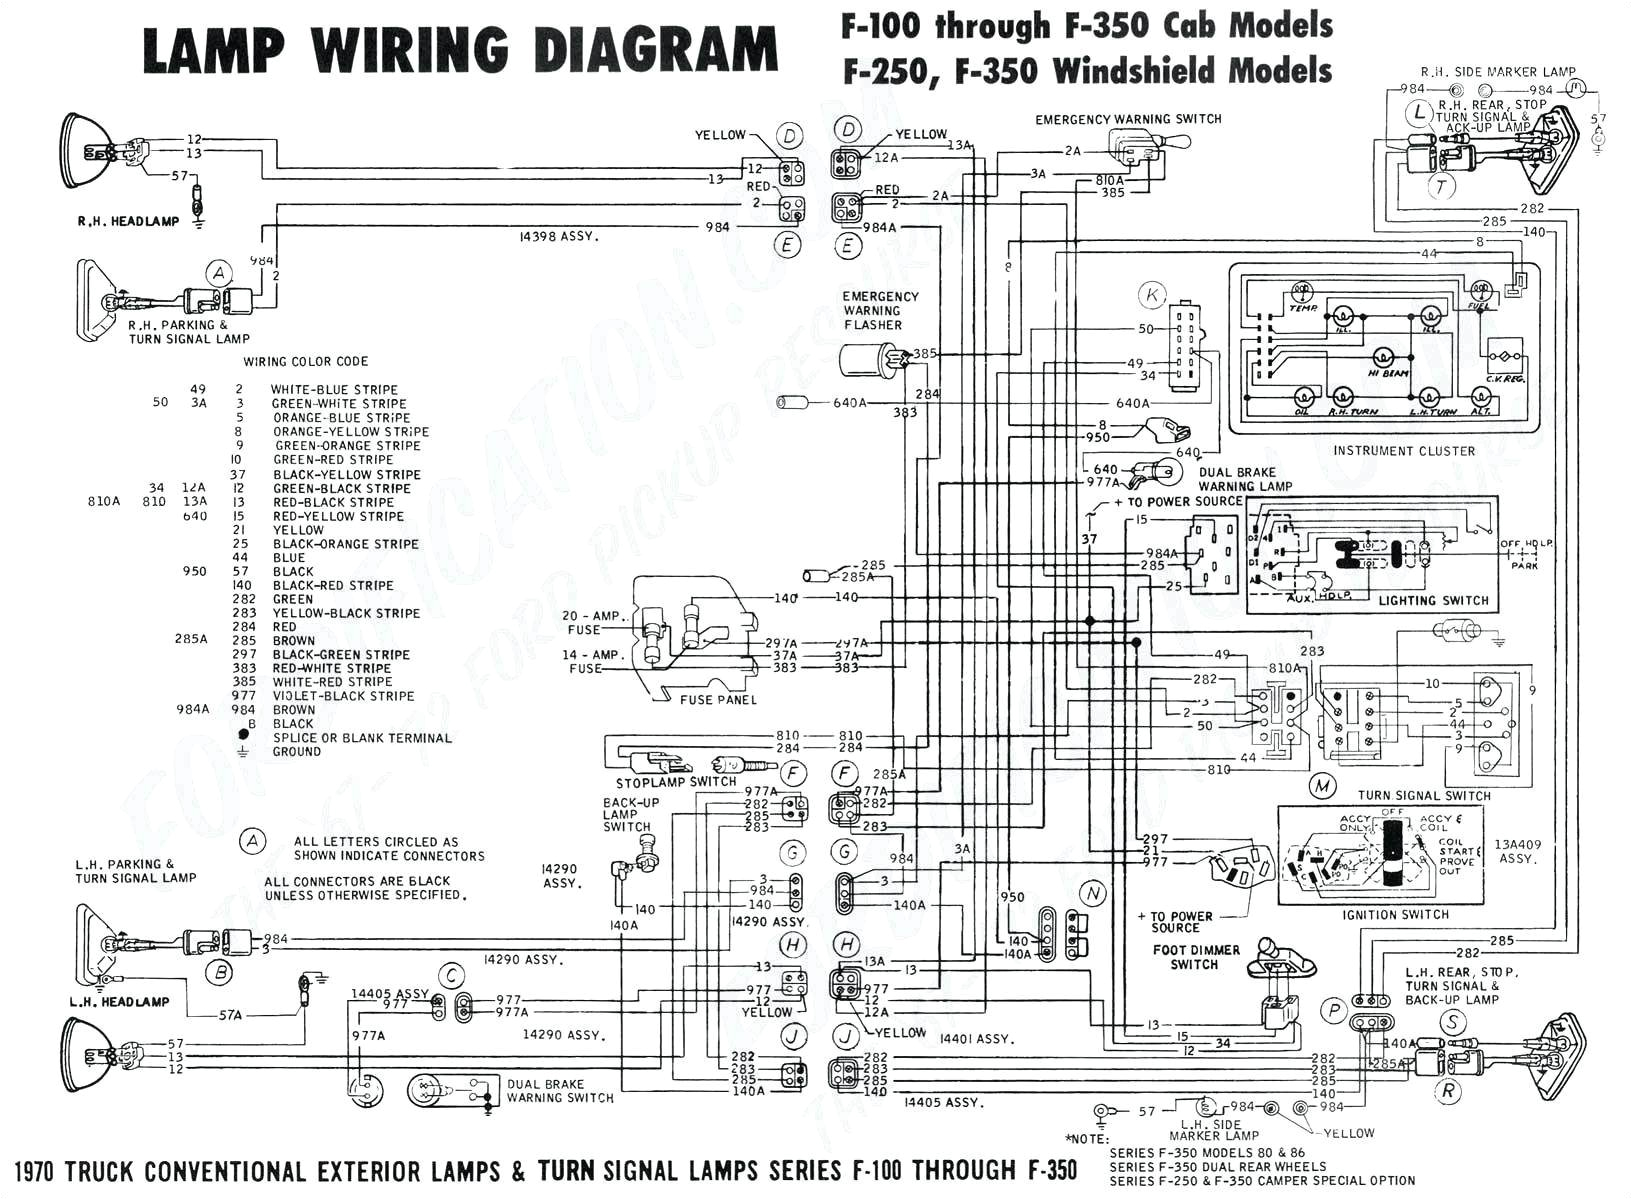 automotive wiring ford tagged headlamp circuit headlight circuit simple series circuit diagram circuit diagrams for the od